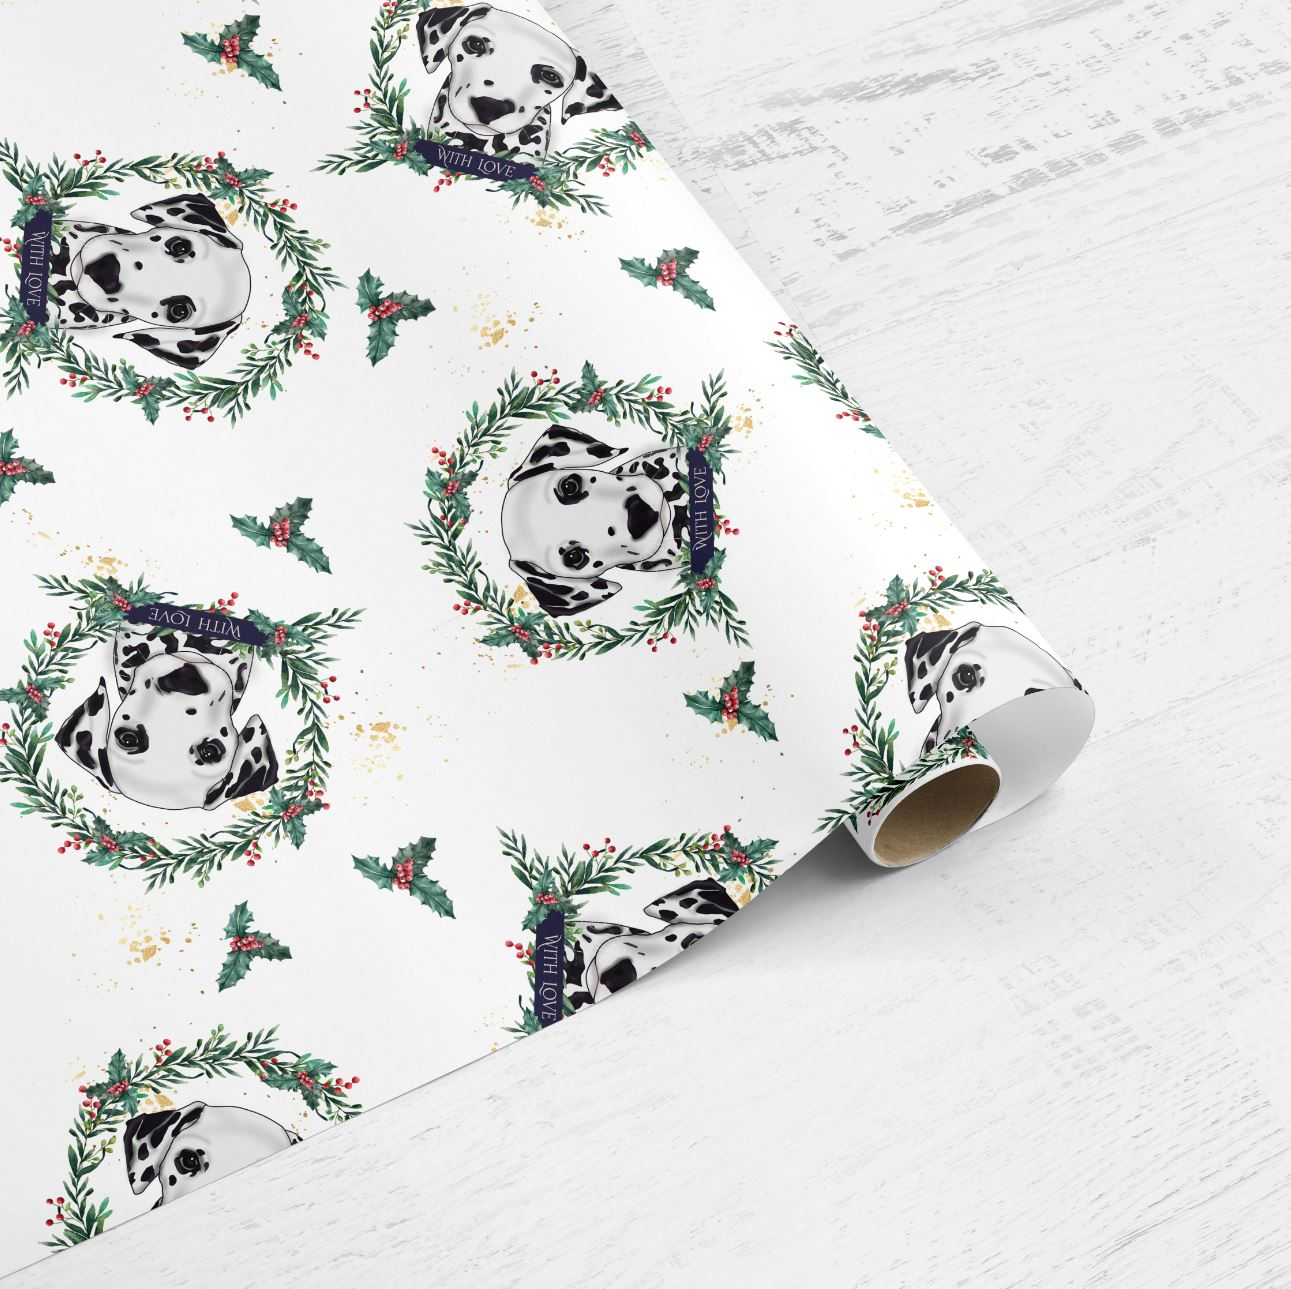 Luxury 100gsm Dalmatian Wrapping Paper